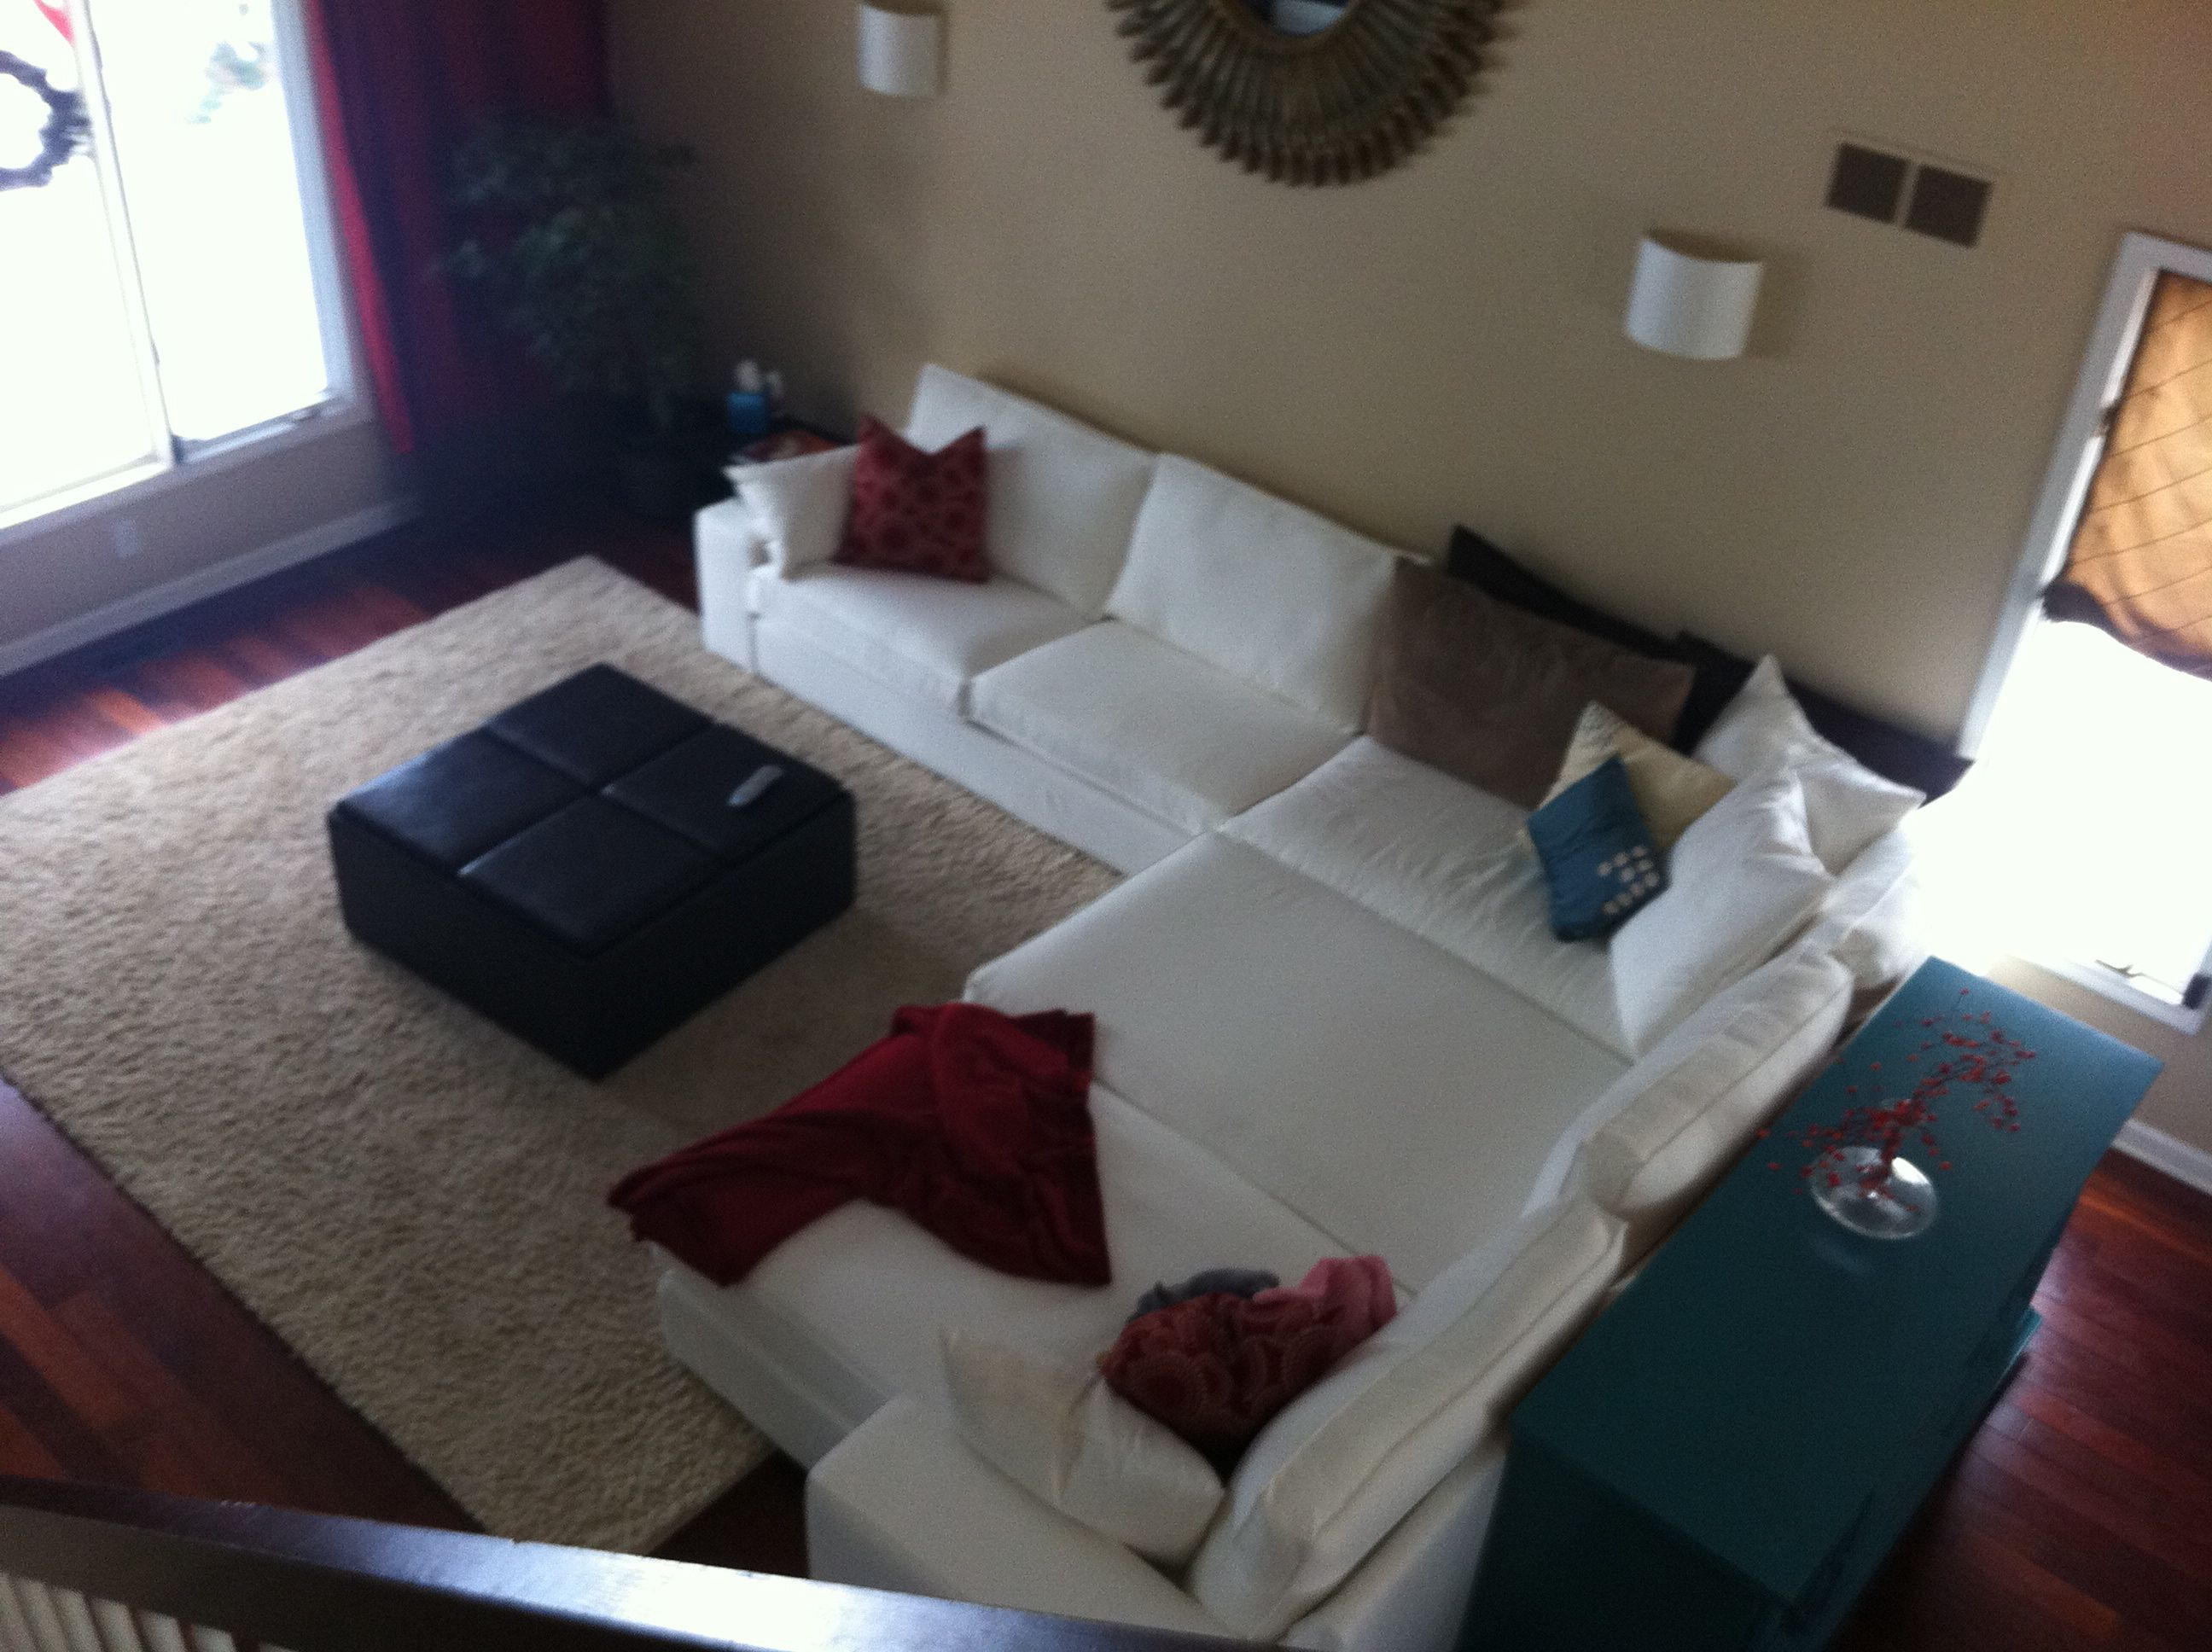 Ikea Kivik Sectional Diy Three Chaise Lounges Use Attachable Hardware Comes With Sofa To Attach One End Of Lounge And Purchased An